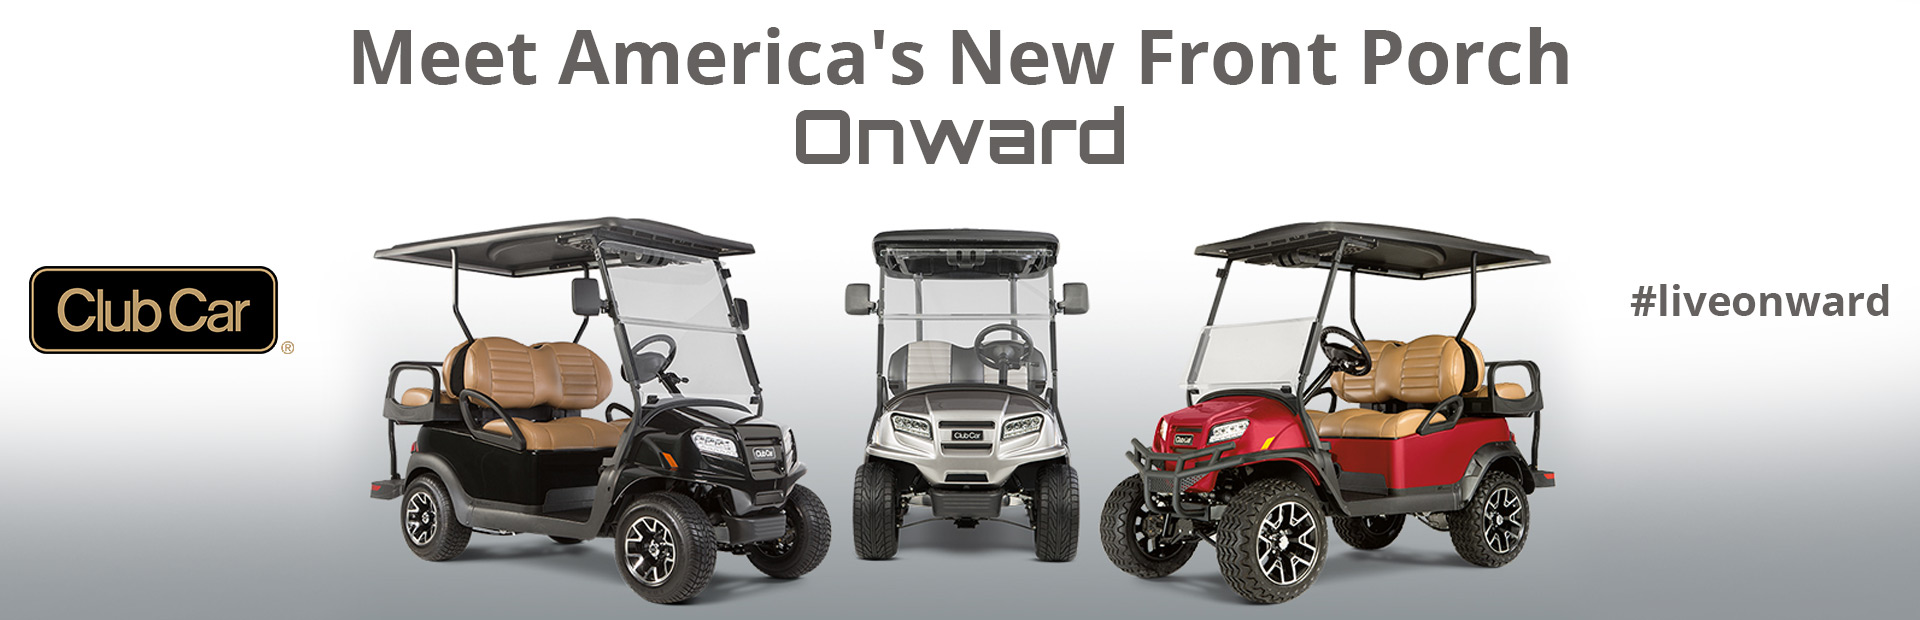 Meet America's New Front Porch: Club Car Onward